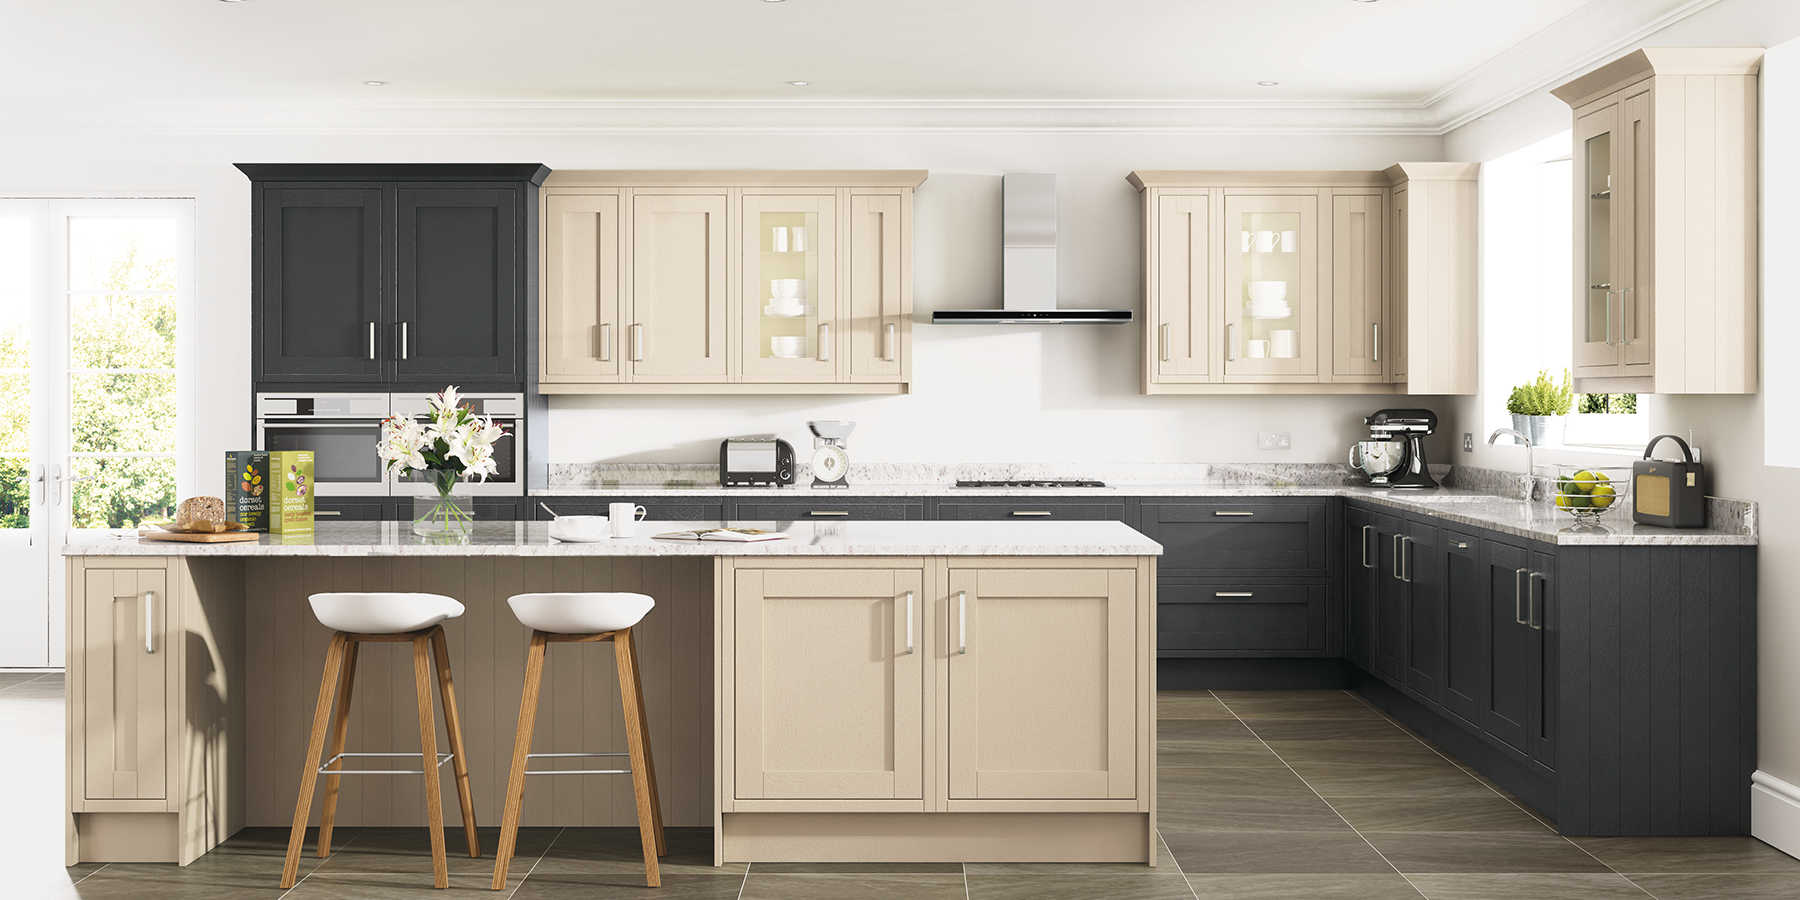 teifi-kitchens-shaker-new-england-black-stone